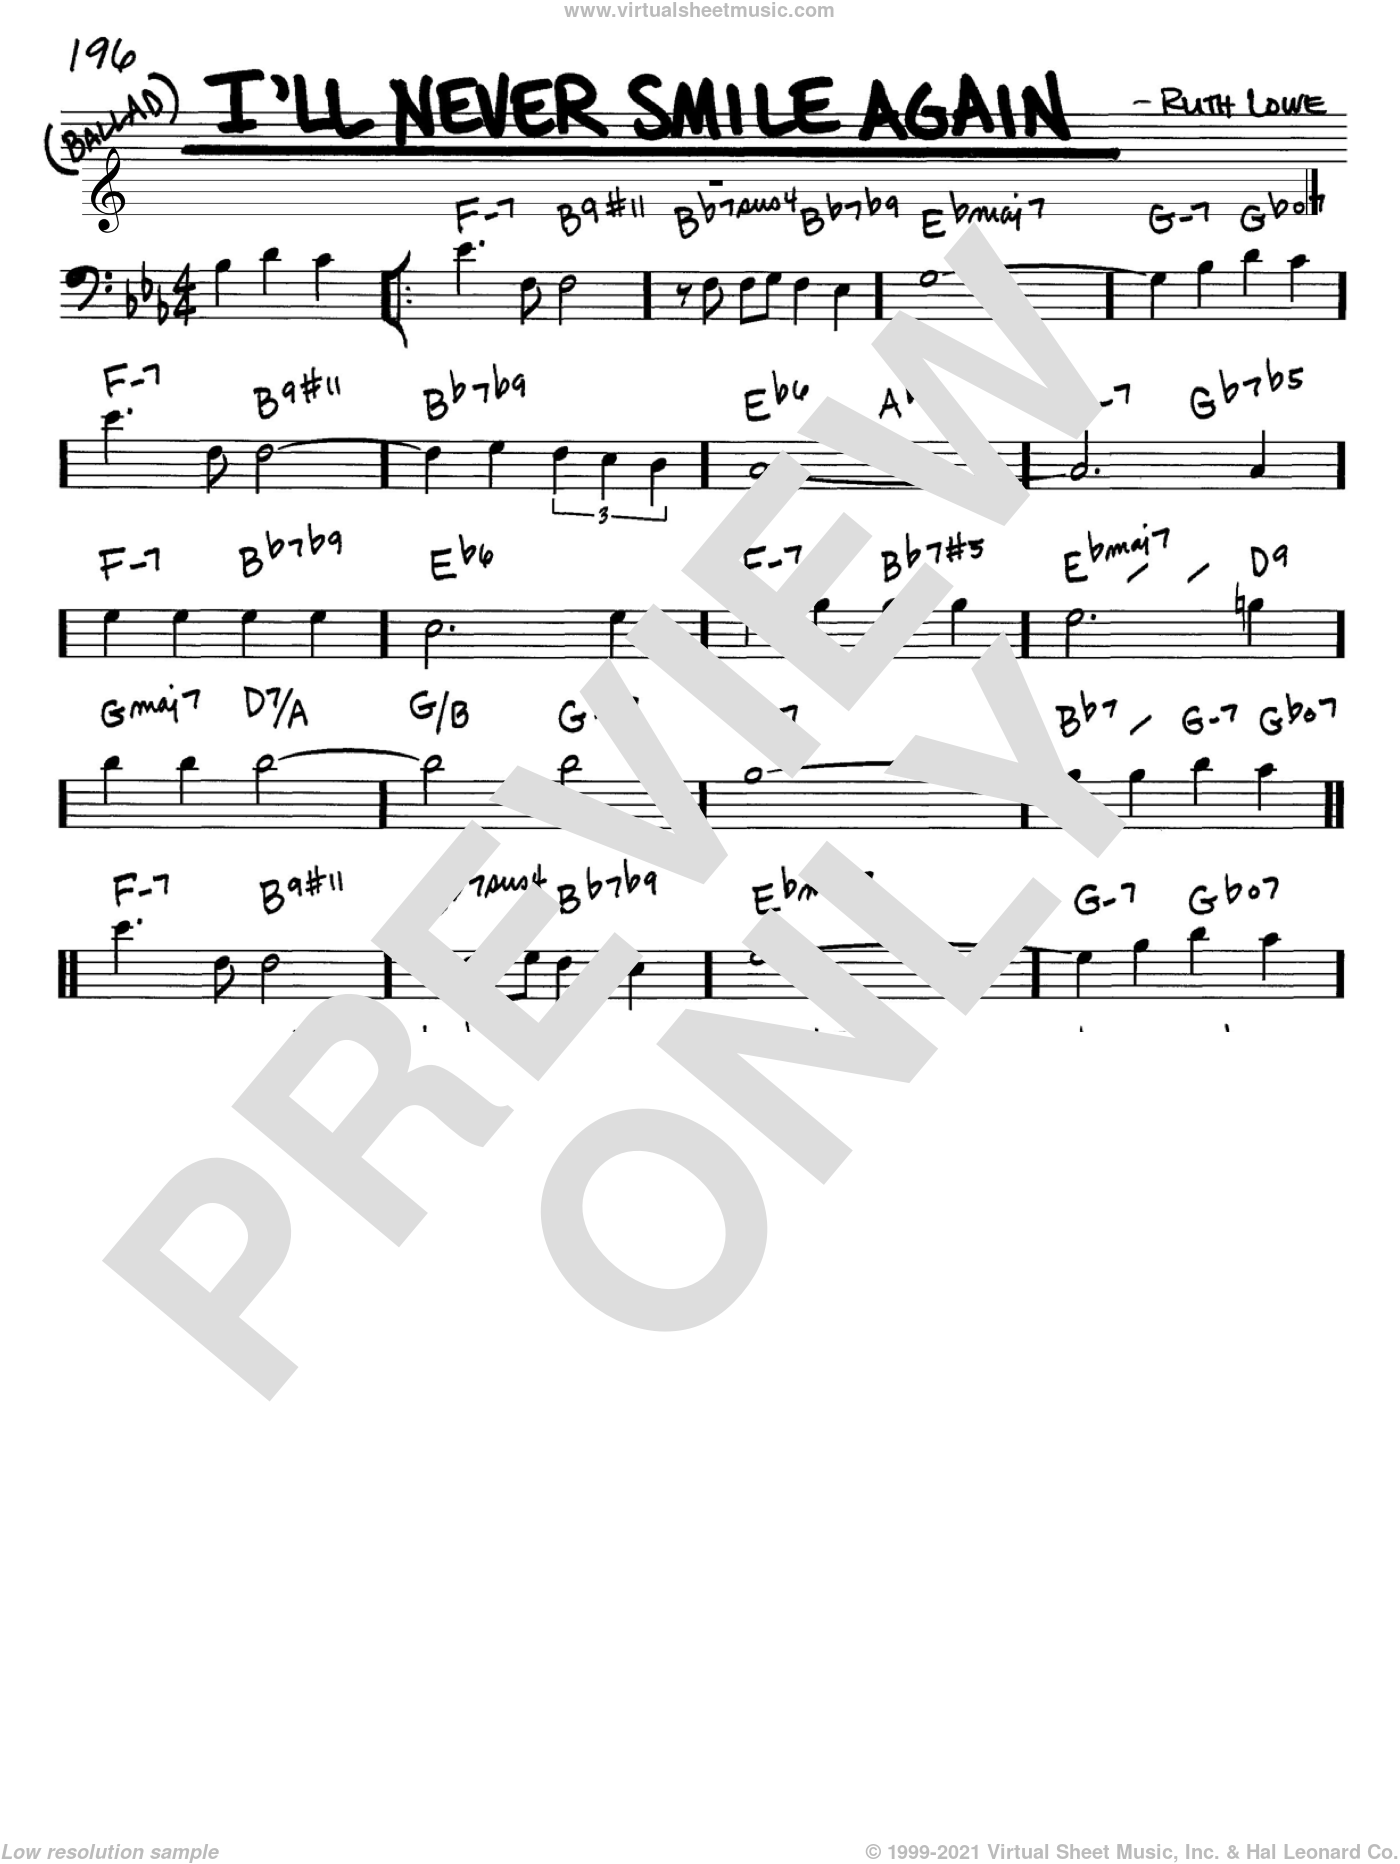 I'll Never Smile Again sheet music for voice and other instruments (Bass Clef ) by Ruth Lowe and Tommy Dorsey. Score Image Preview.